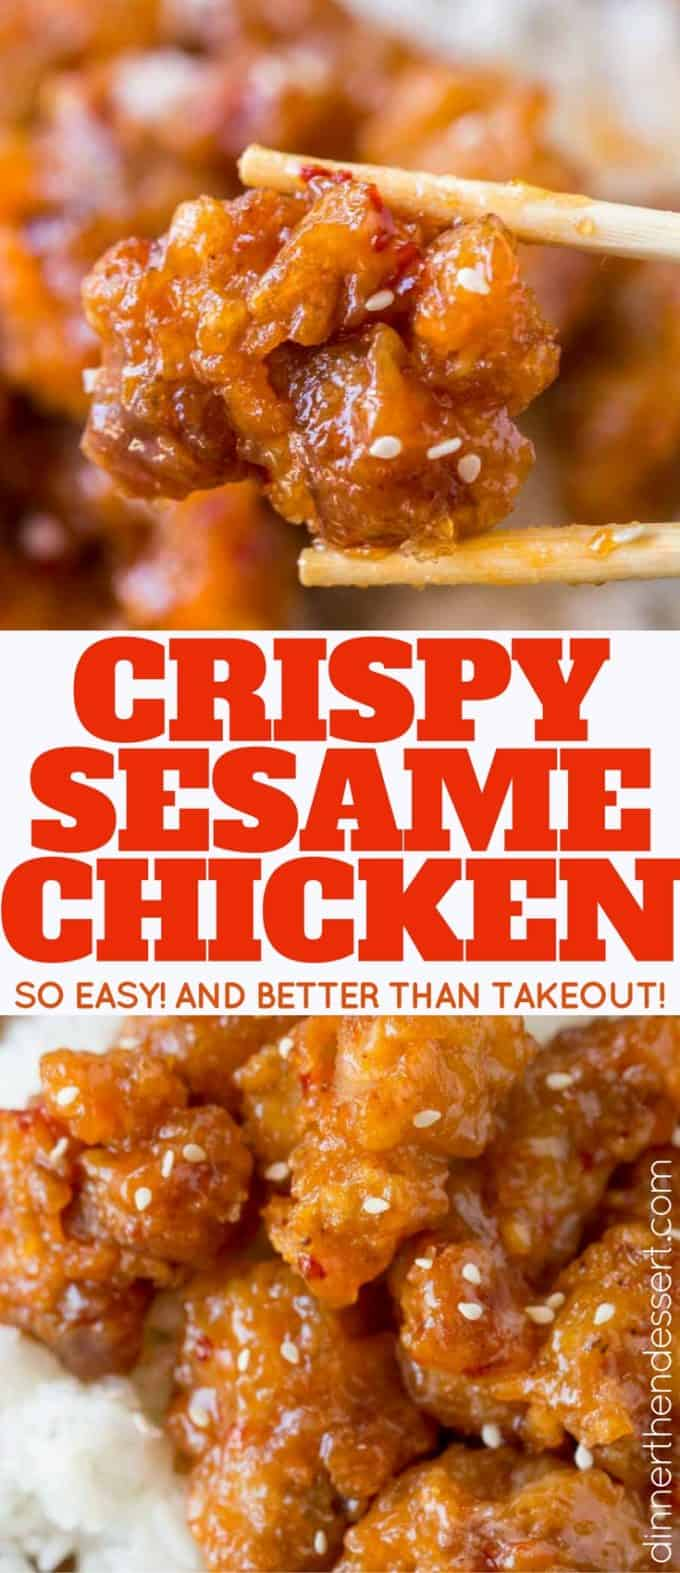 Crispy Sesame Chicken is easy to make with super crispy batter and delicious sesame sauce you'll skip the takeout!